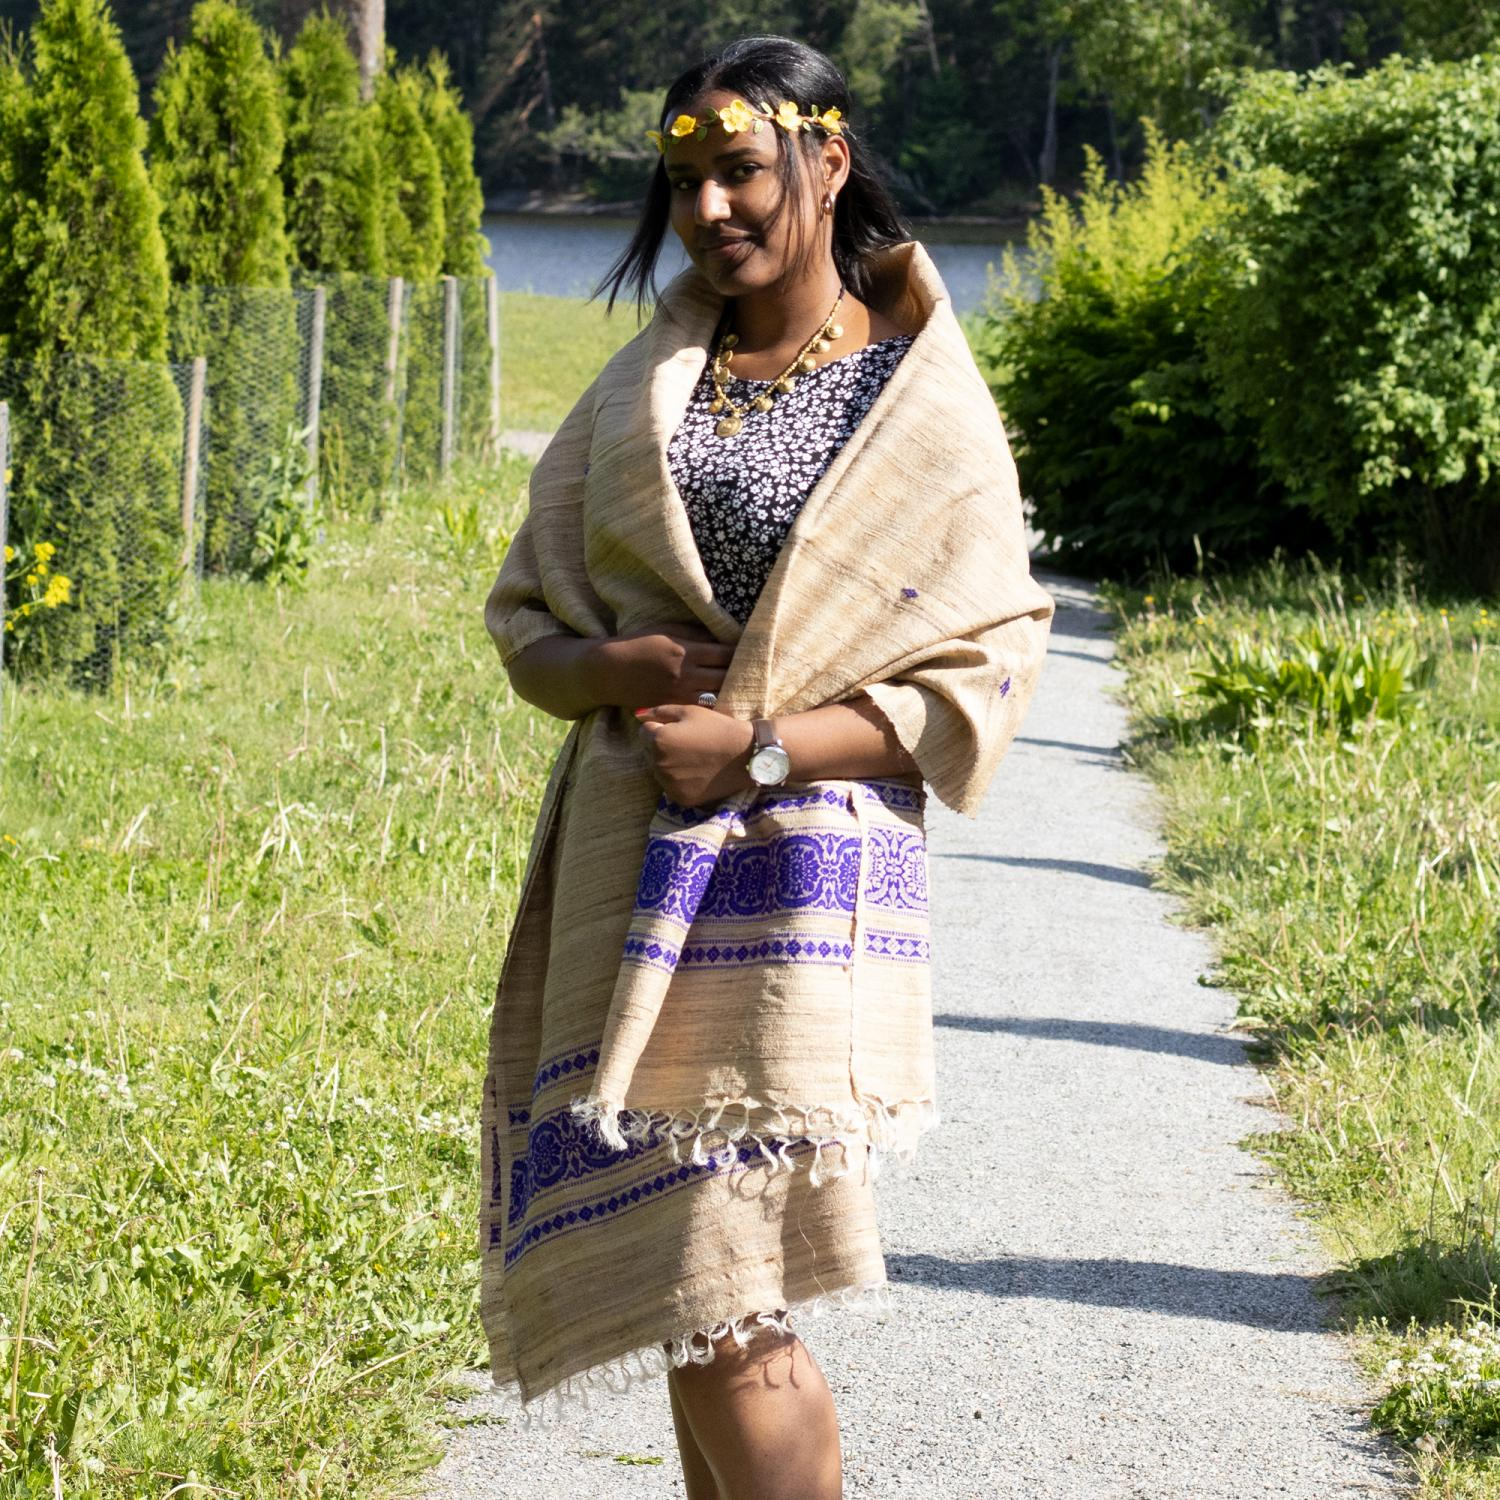 Woman in dark floral dress wrapped in a shawl with purple pattern edge, walking on a path in a park